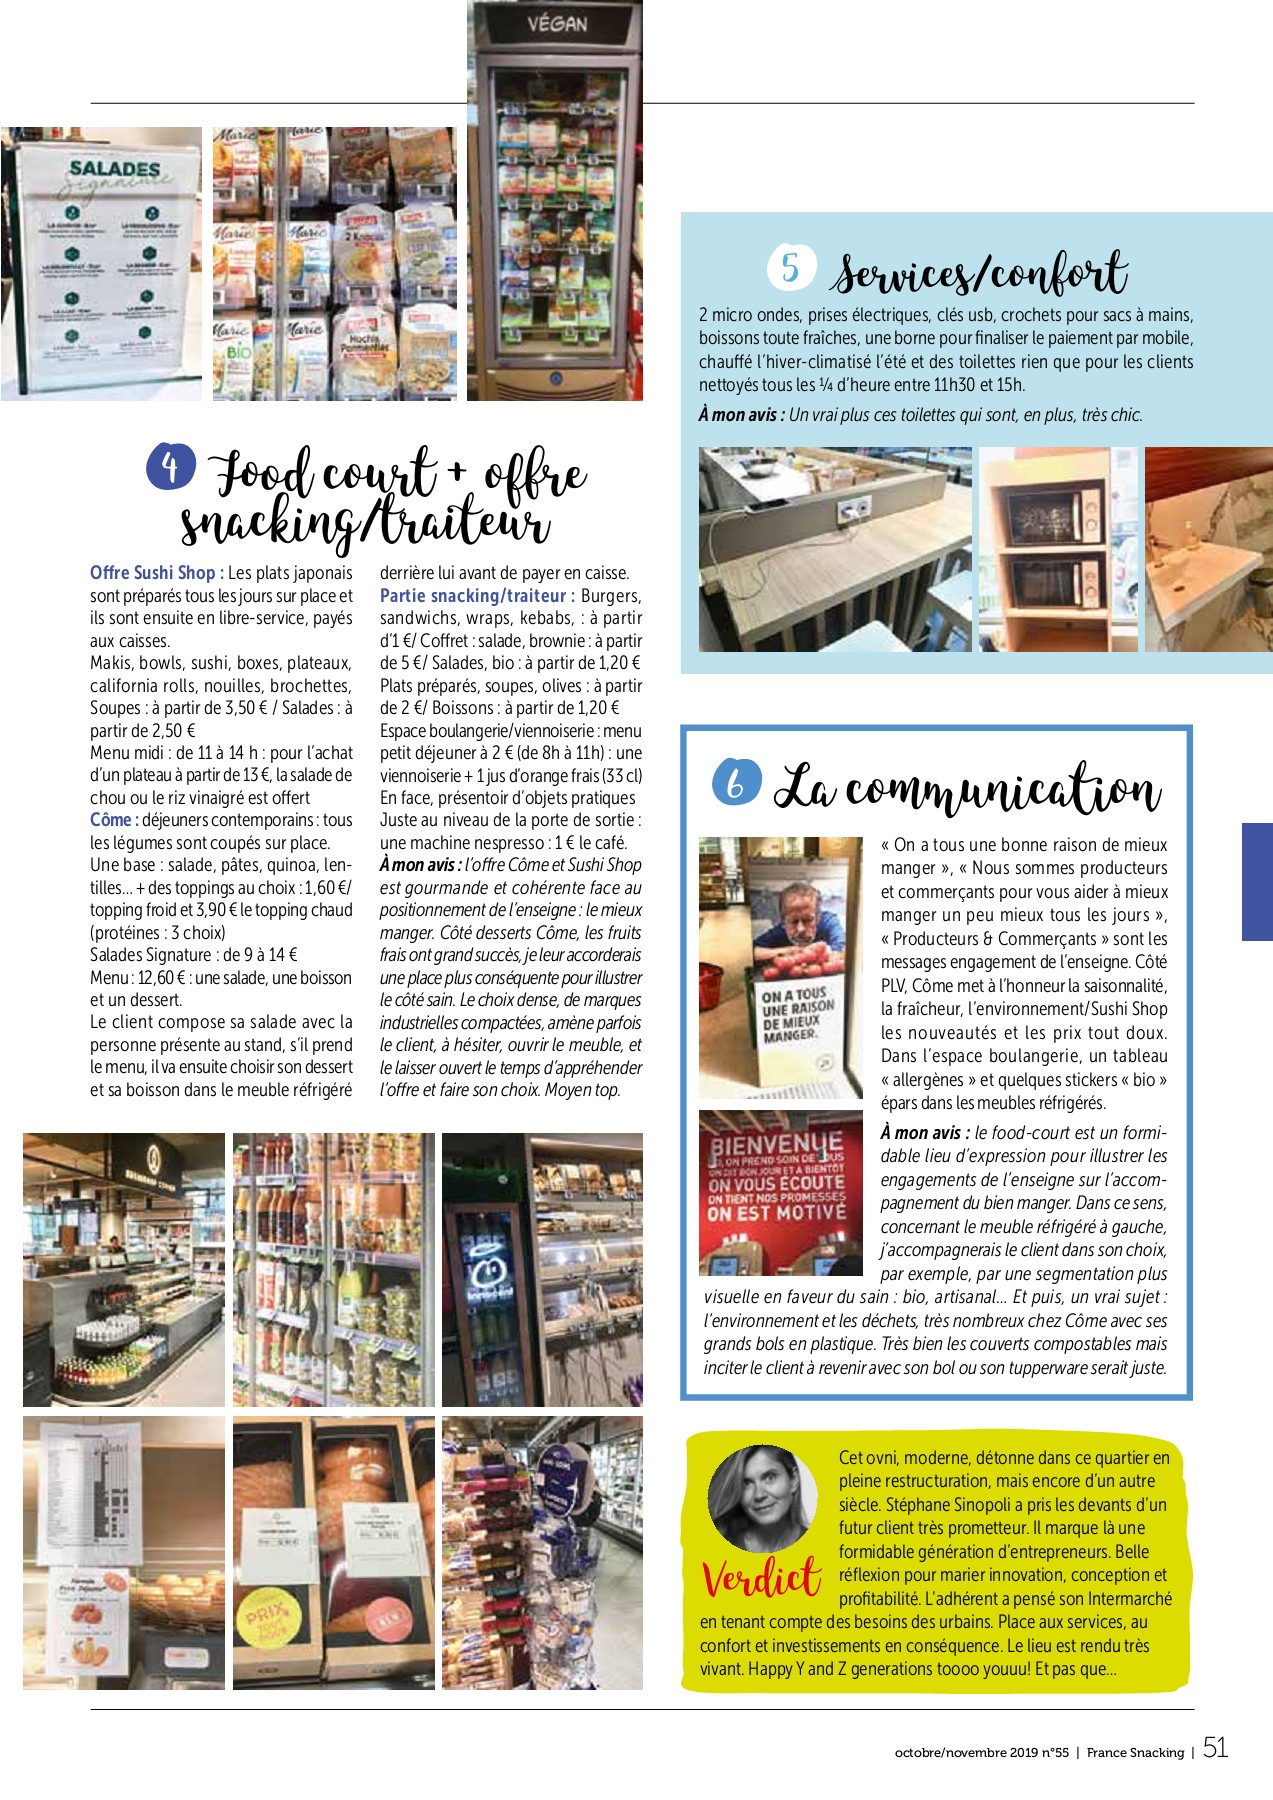 Salon Jardin Intermarche Génial France Snacking N°55 Pages 51 100 Text Version Of 20 Best Of Salon Jardin Intermarche